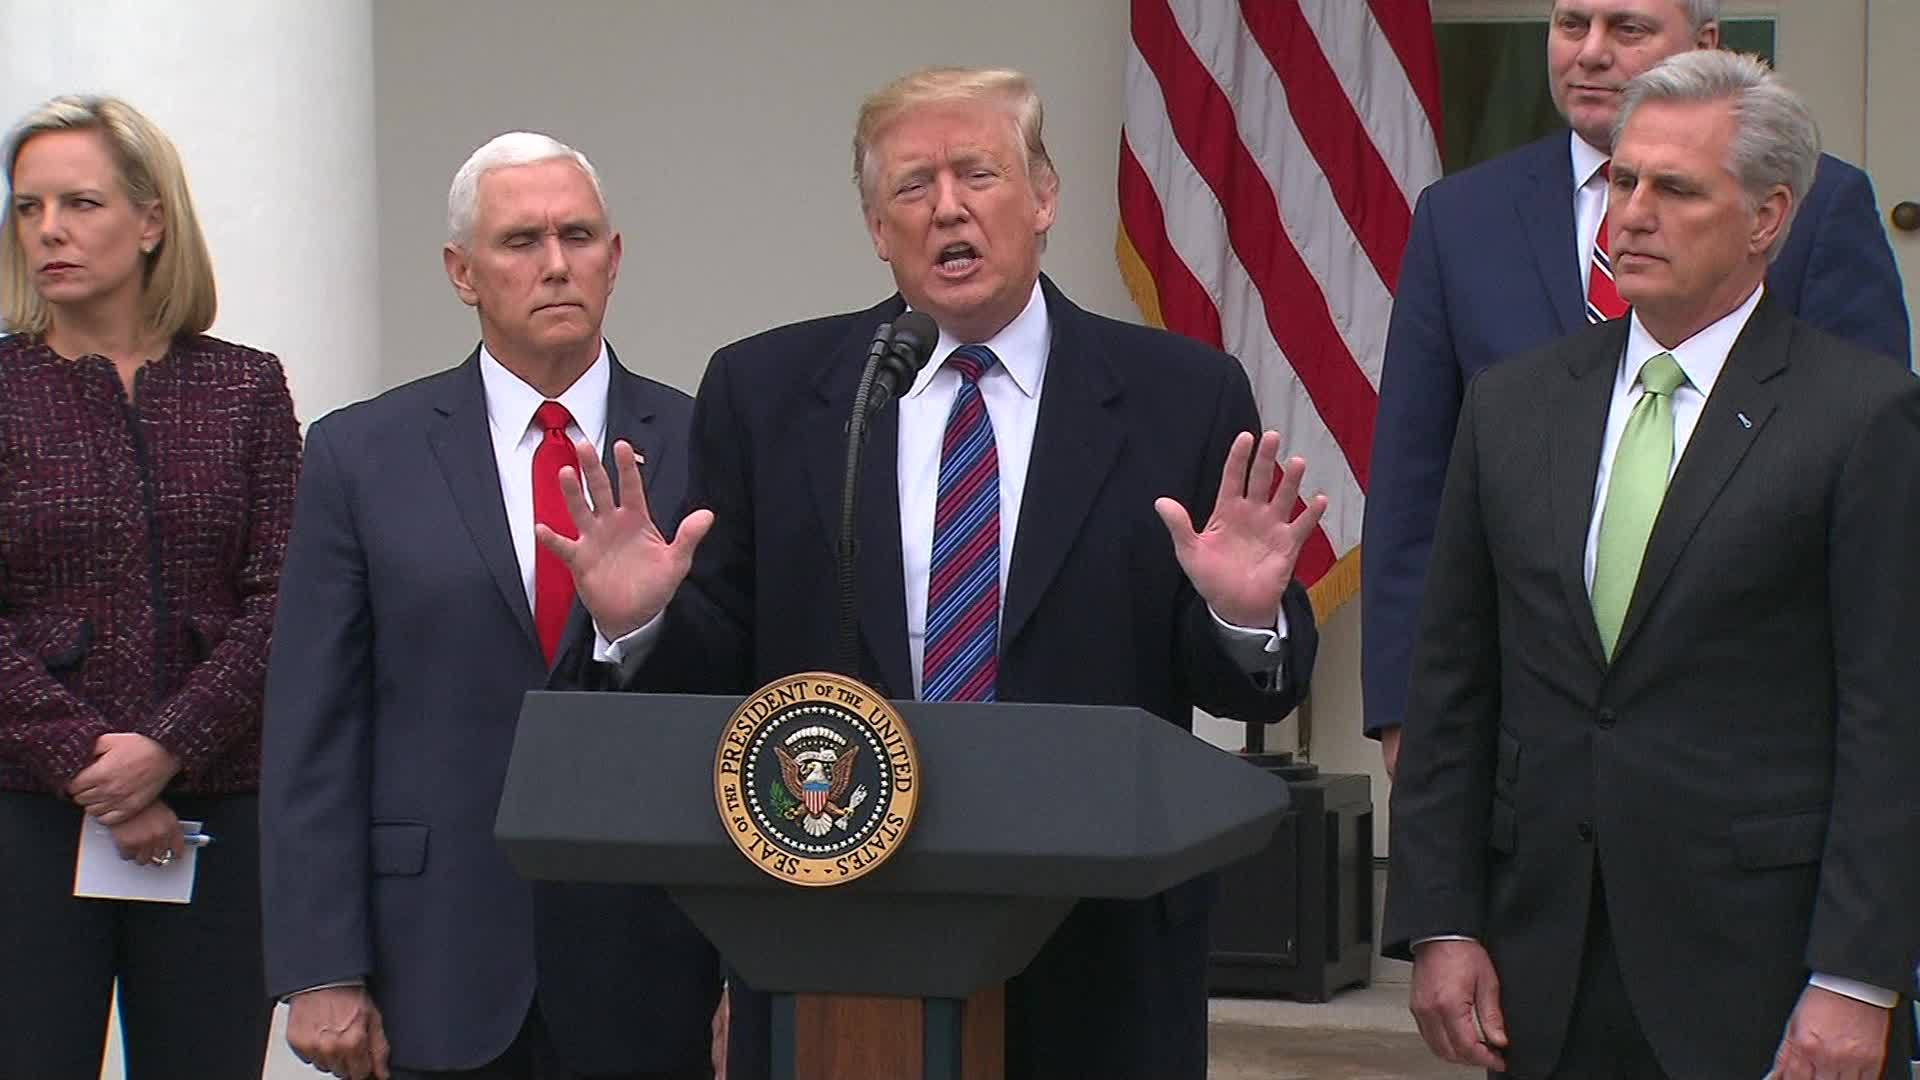 VIDEO: President Trump claims former presidents told him to build wall